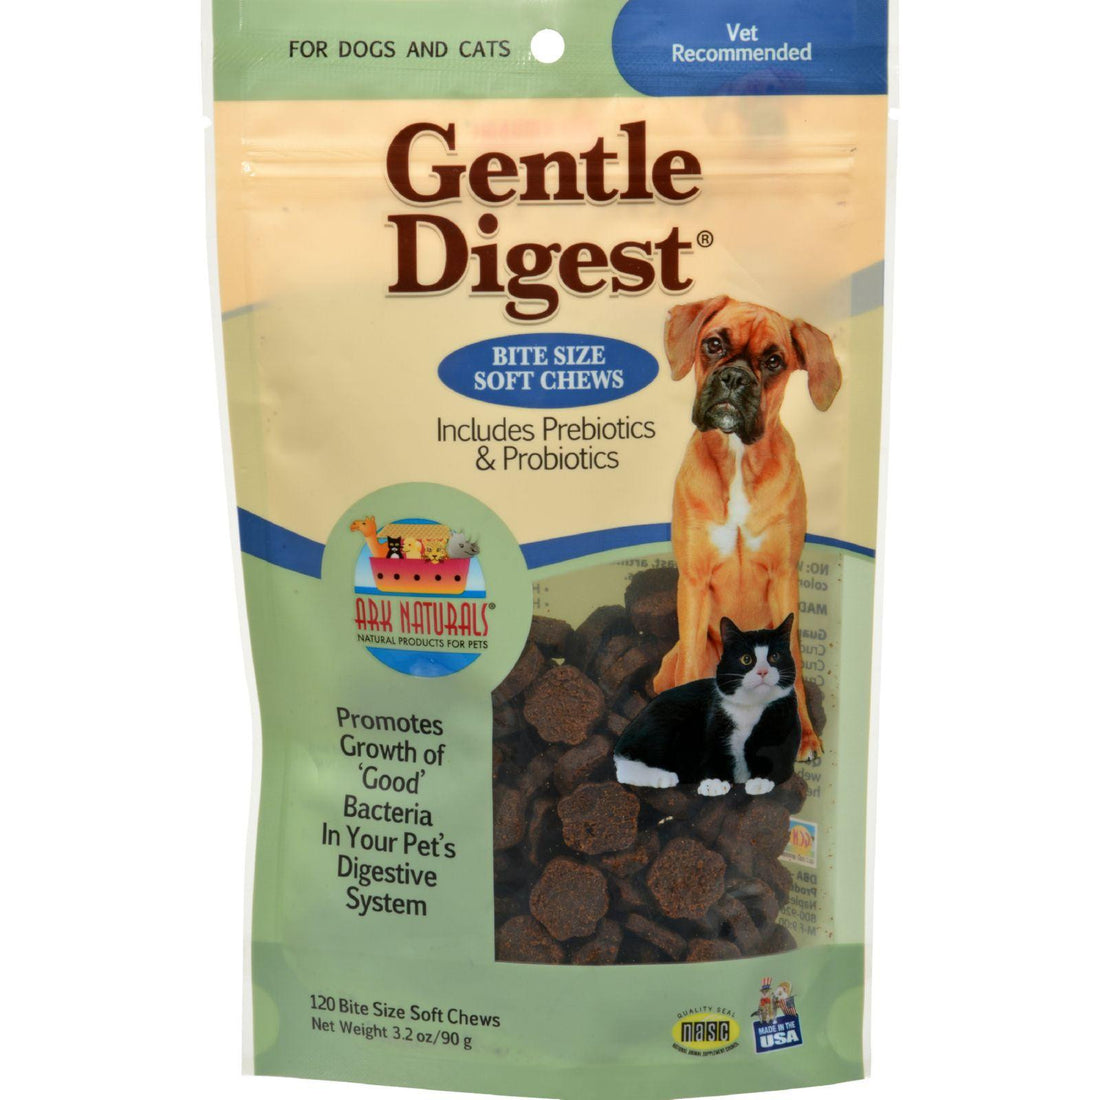 Mother Mantis: Ark Naturals Gentle Digest For Dogs And Cats - 120 Soft Chews Ark Naturals